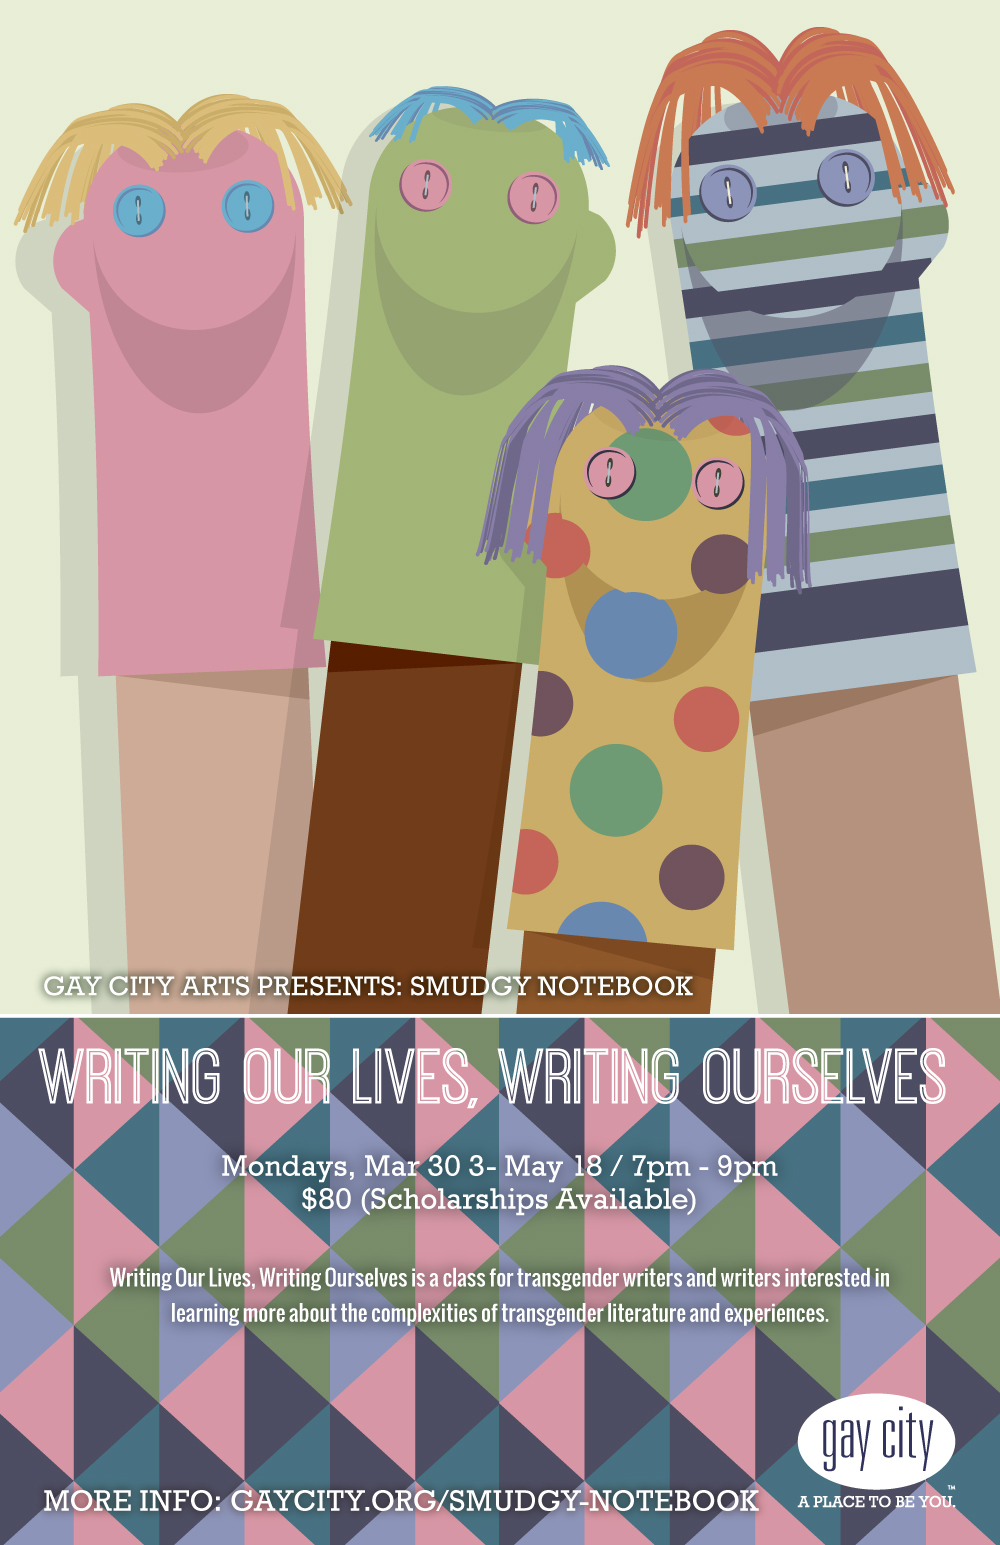 Poster for Gay City Arts: Writing Our Lives